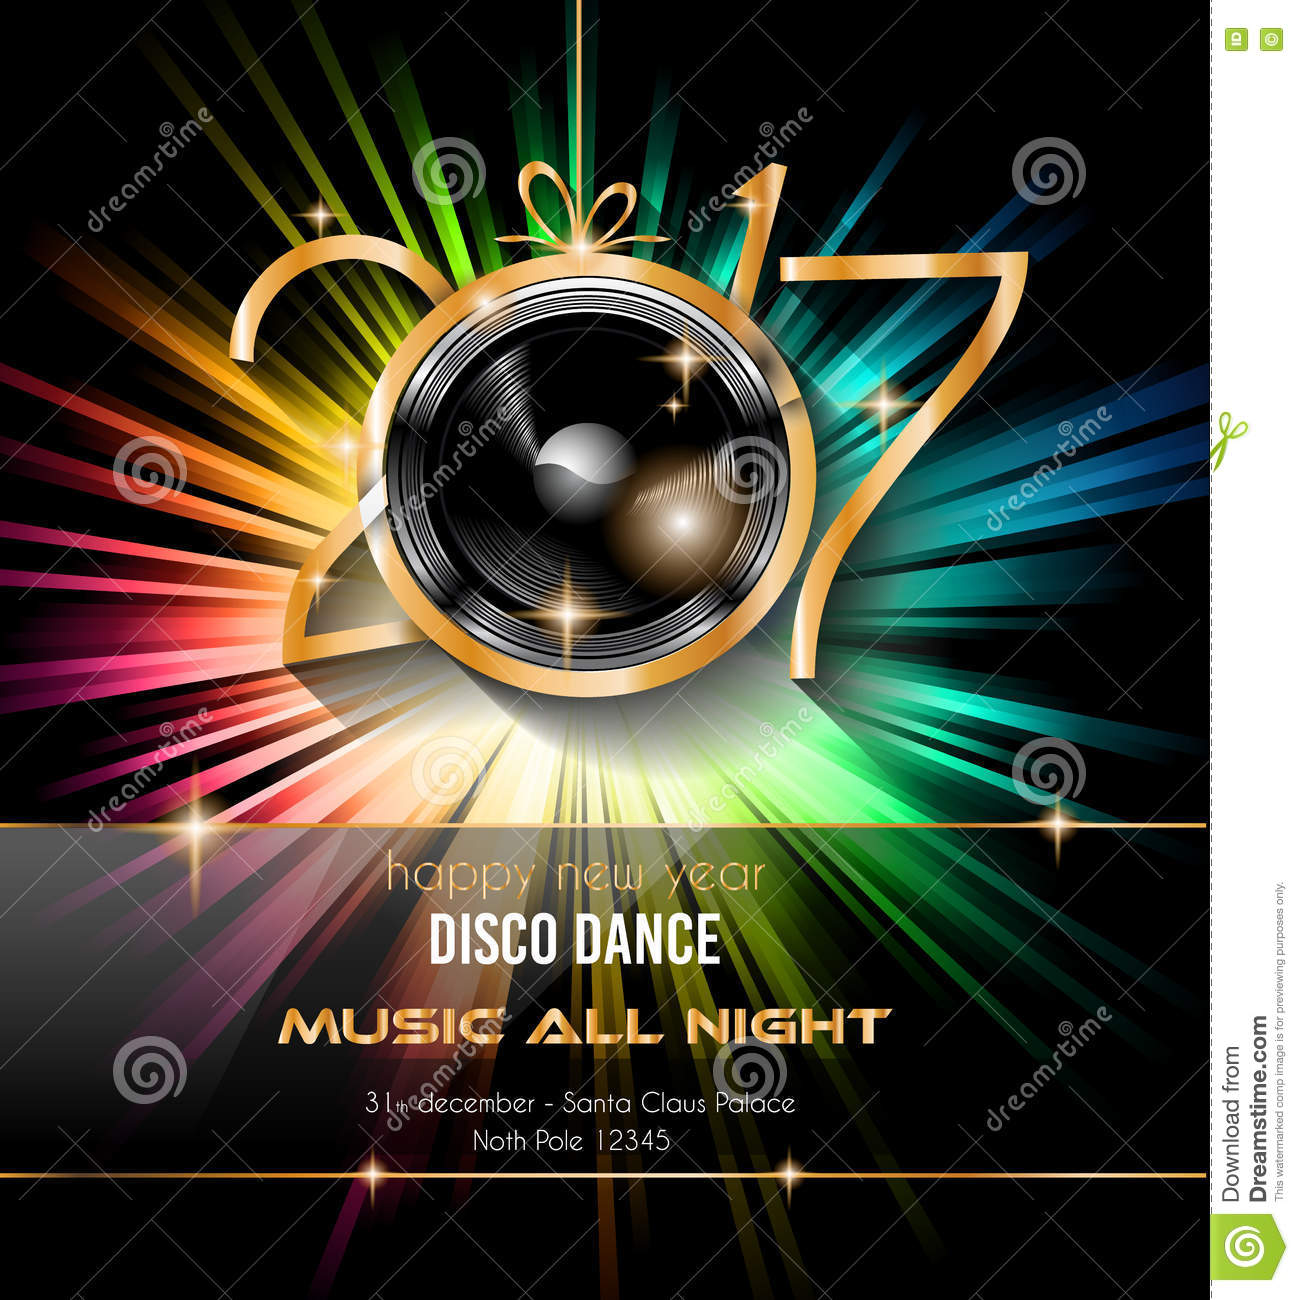 2017 happy new year disco party background for your flyers